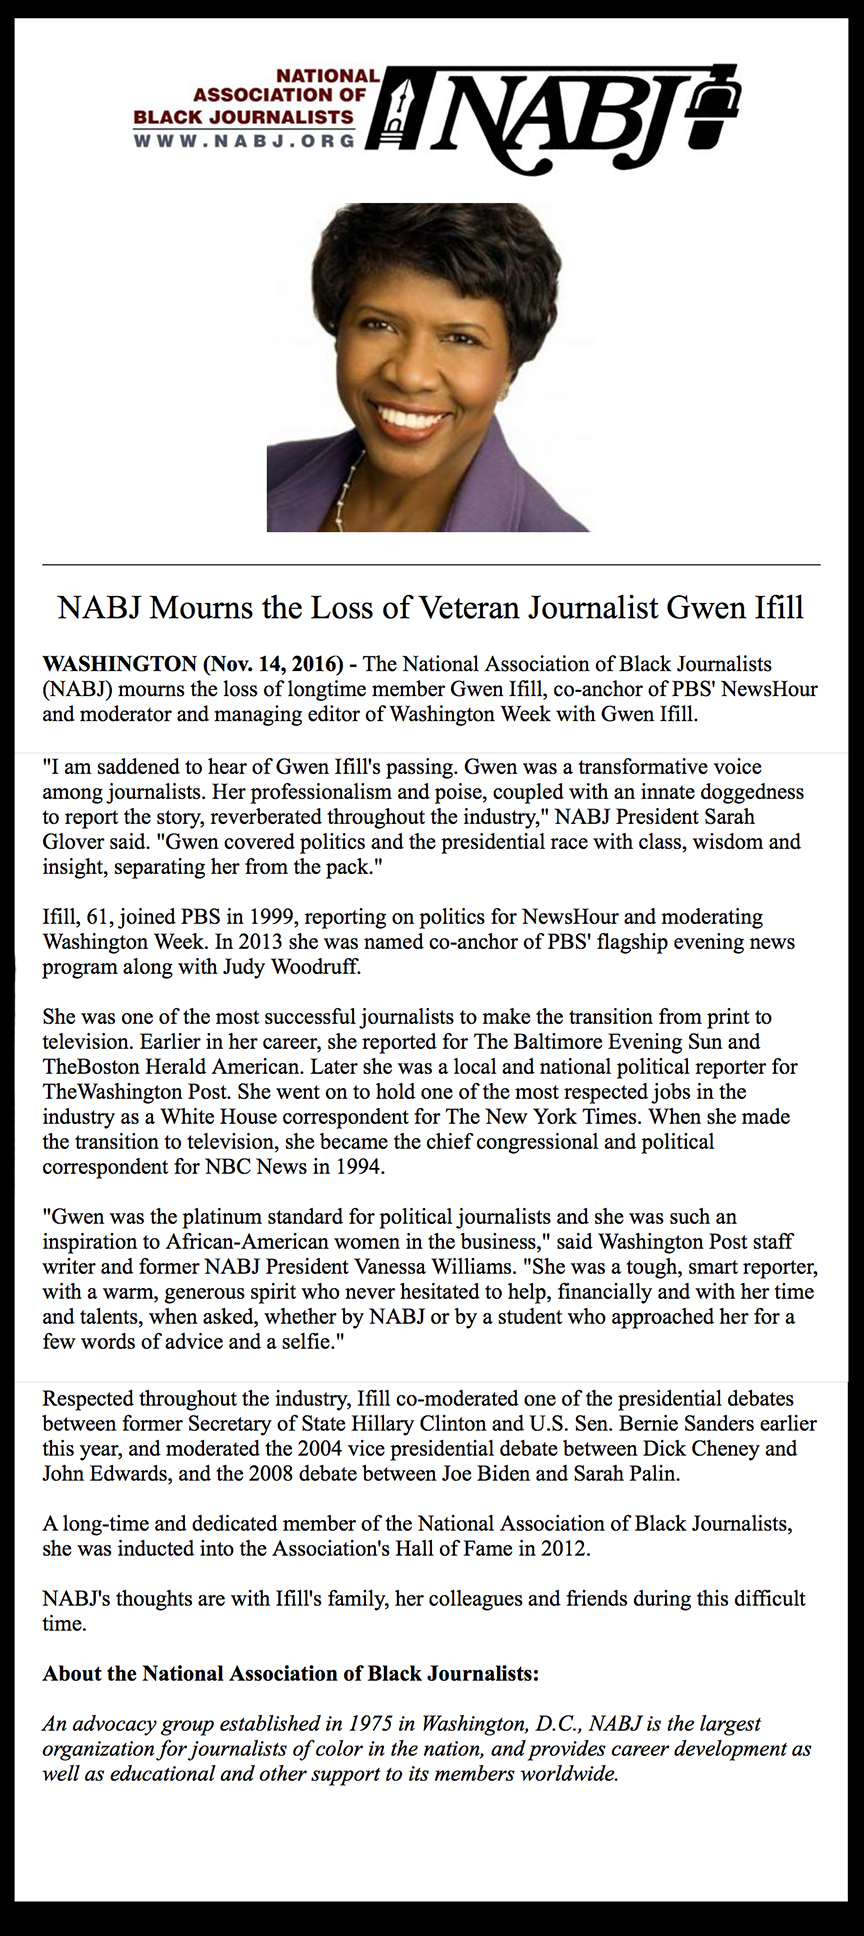 NABJ Mourns Gwen Ifill